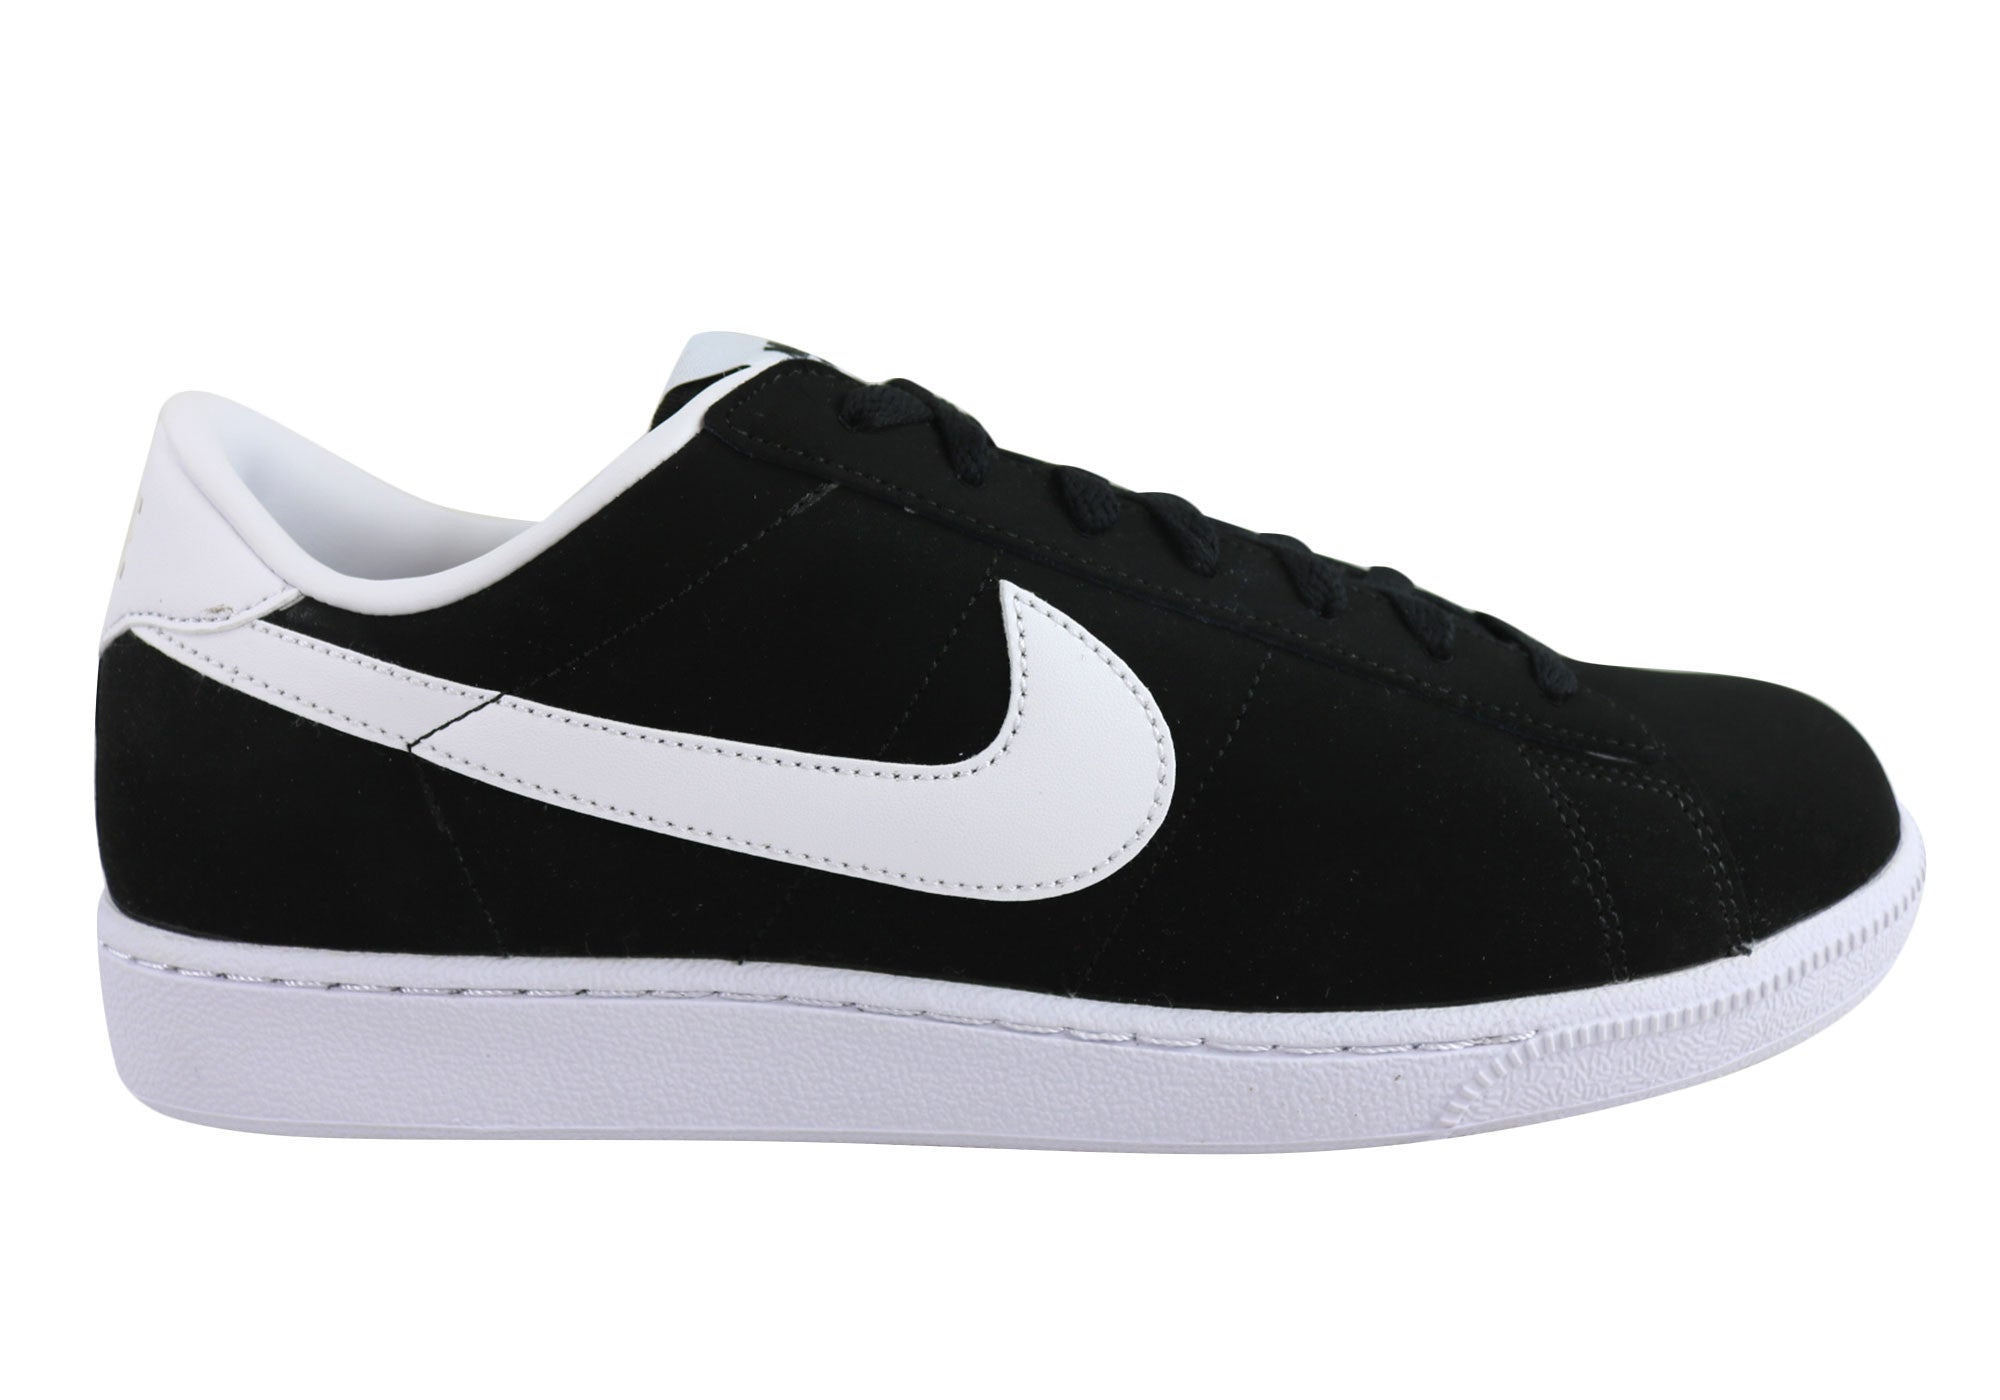 promo code 92b97 01001 Home Nike Tennis Classic Mens Comfortable Lace Up Shoes. Black · White ...